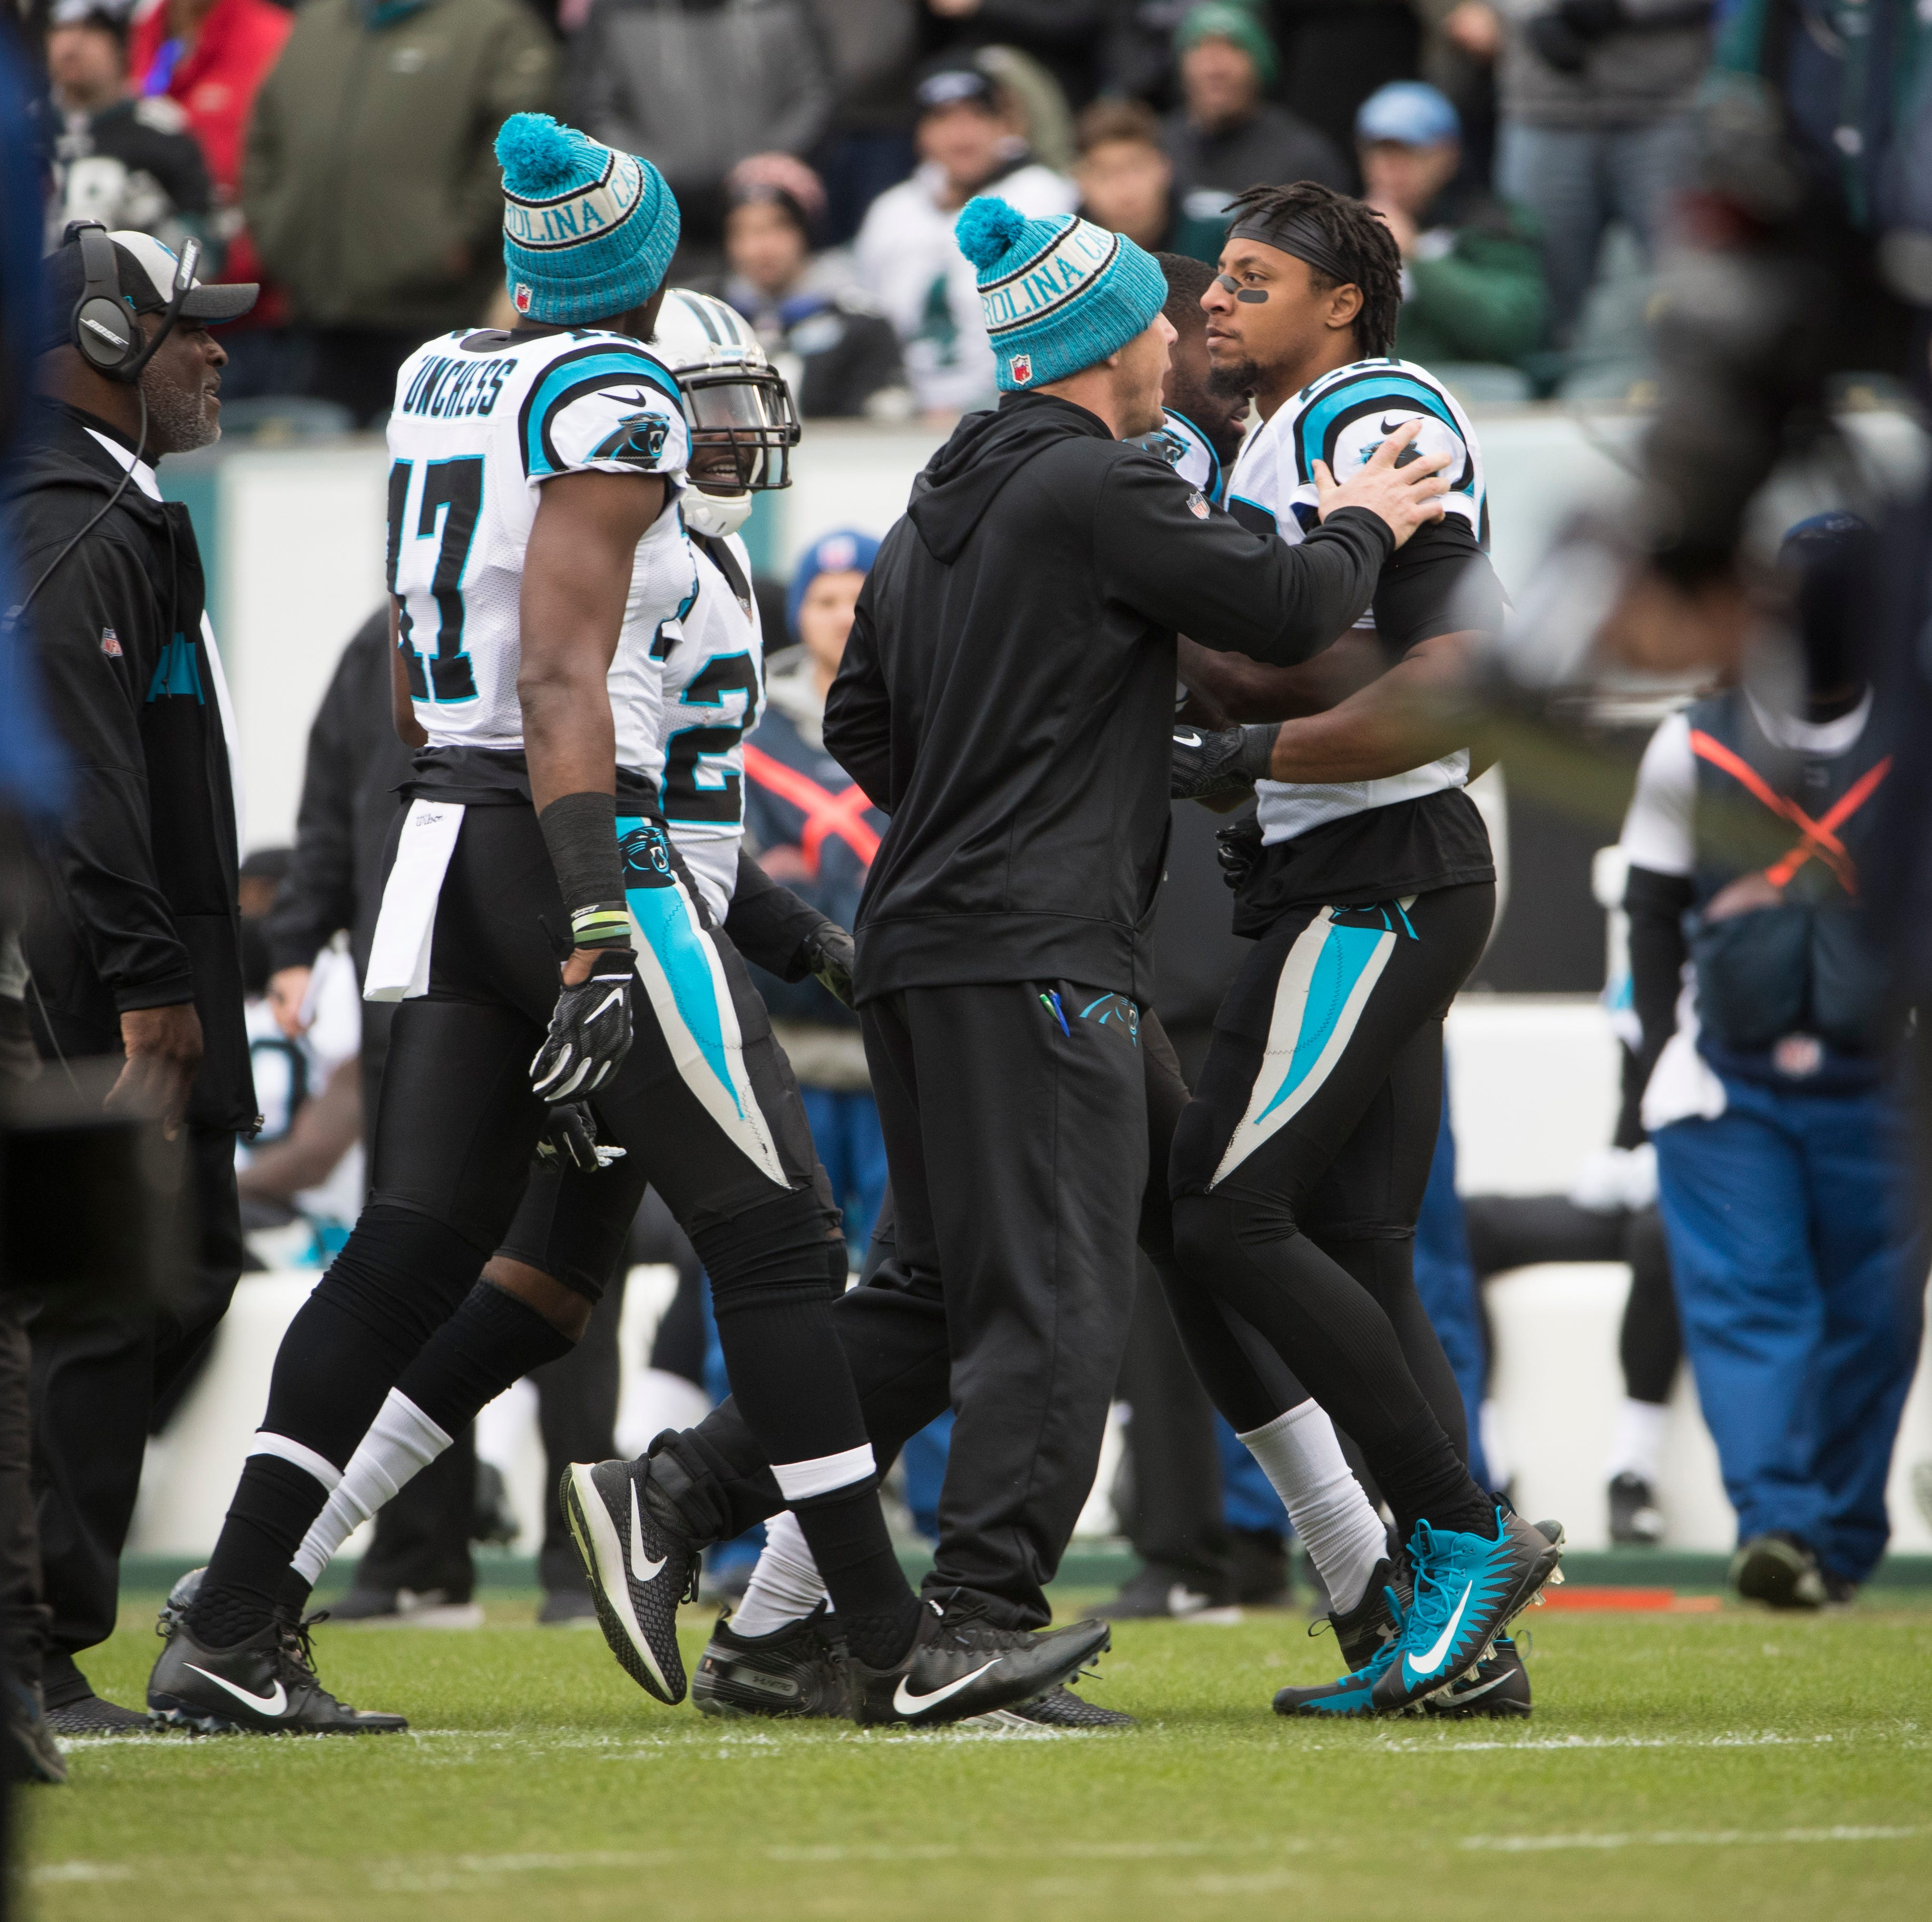 Panthers' Eric Reid shoves Eagles' Malcolm Jenkins, calls him 'a sellout'